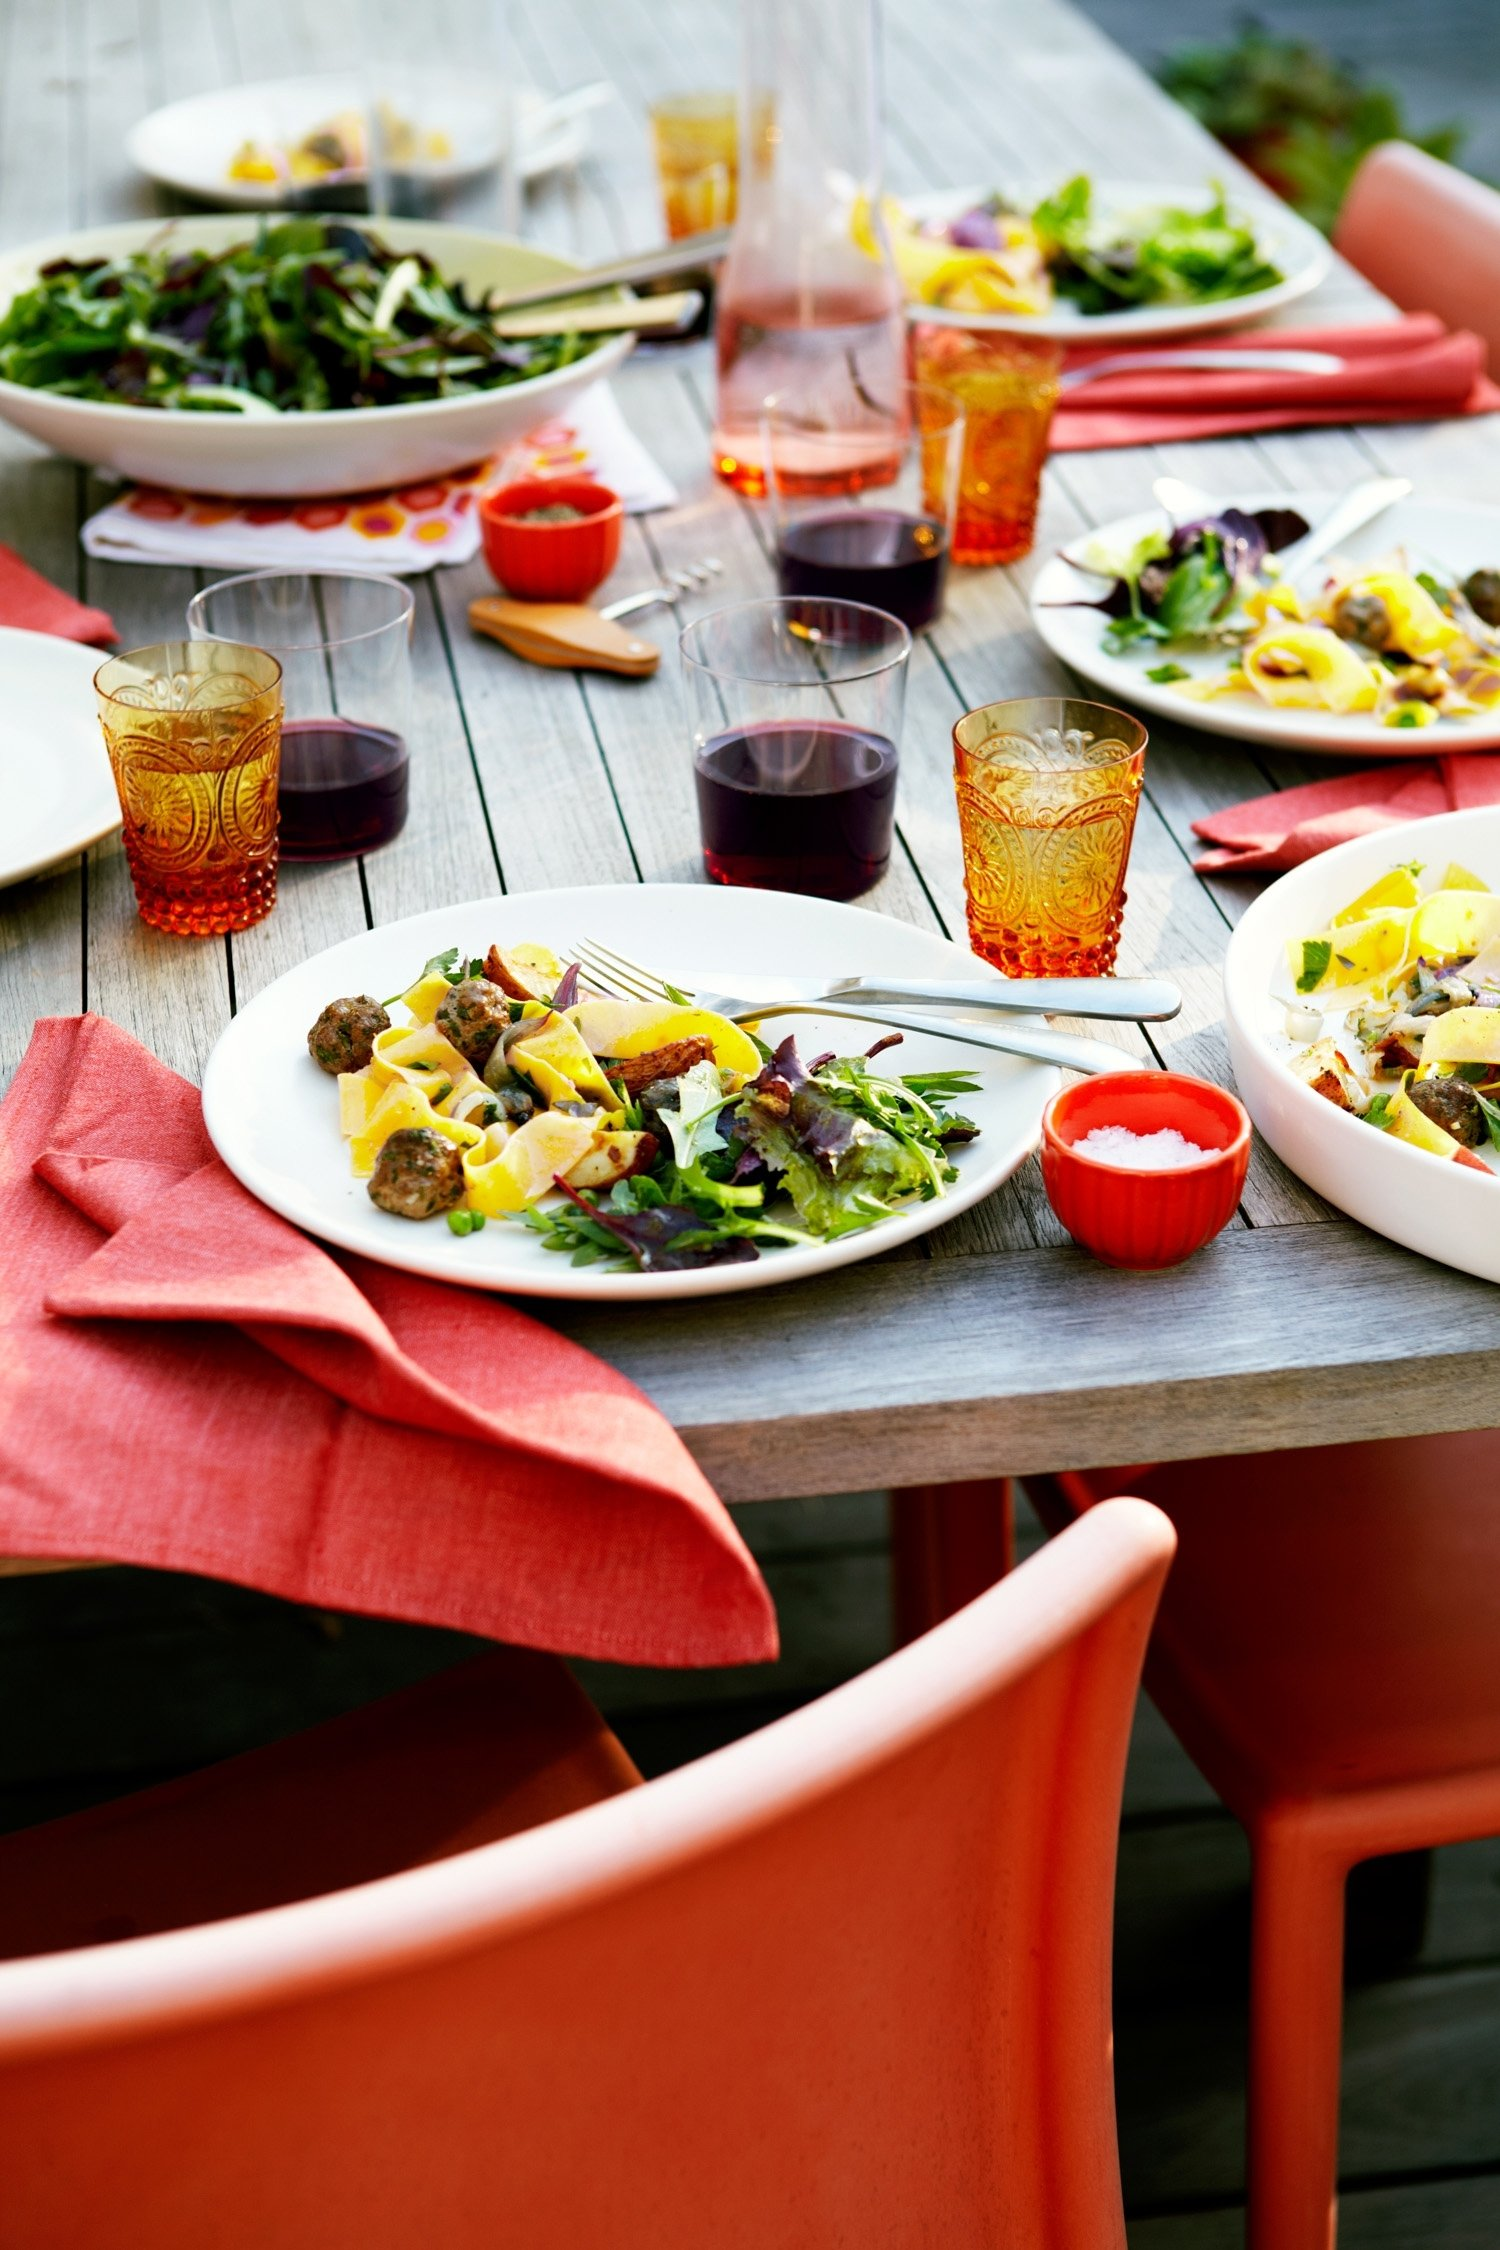 10 Wonderful Ideas For A Dinner Party sunset magazine 2020